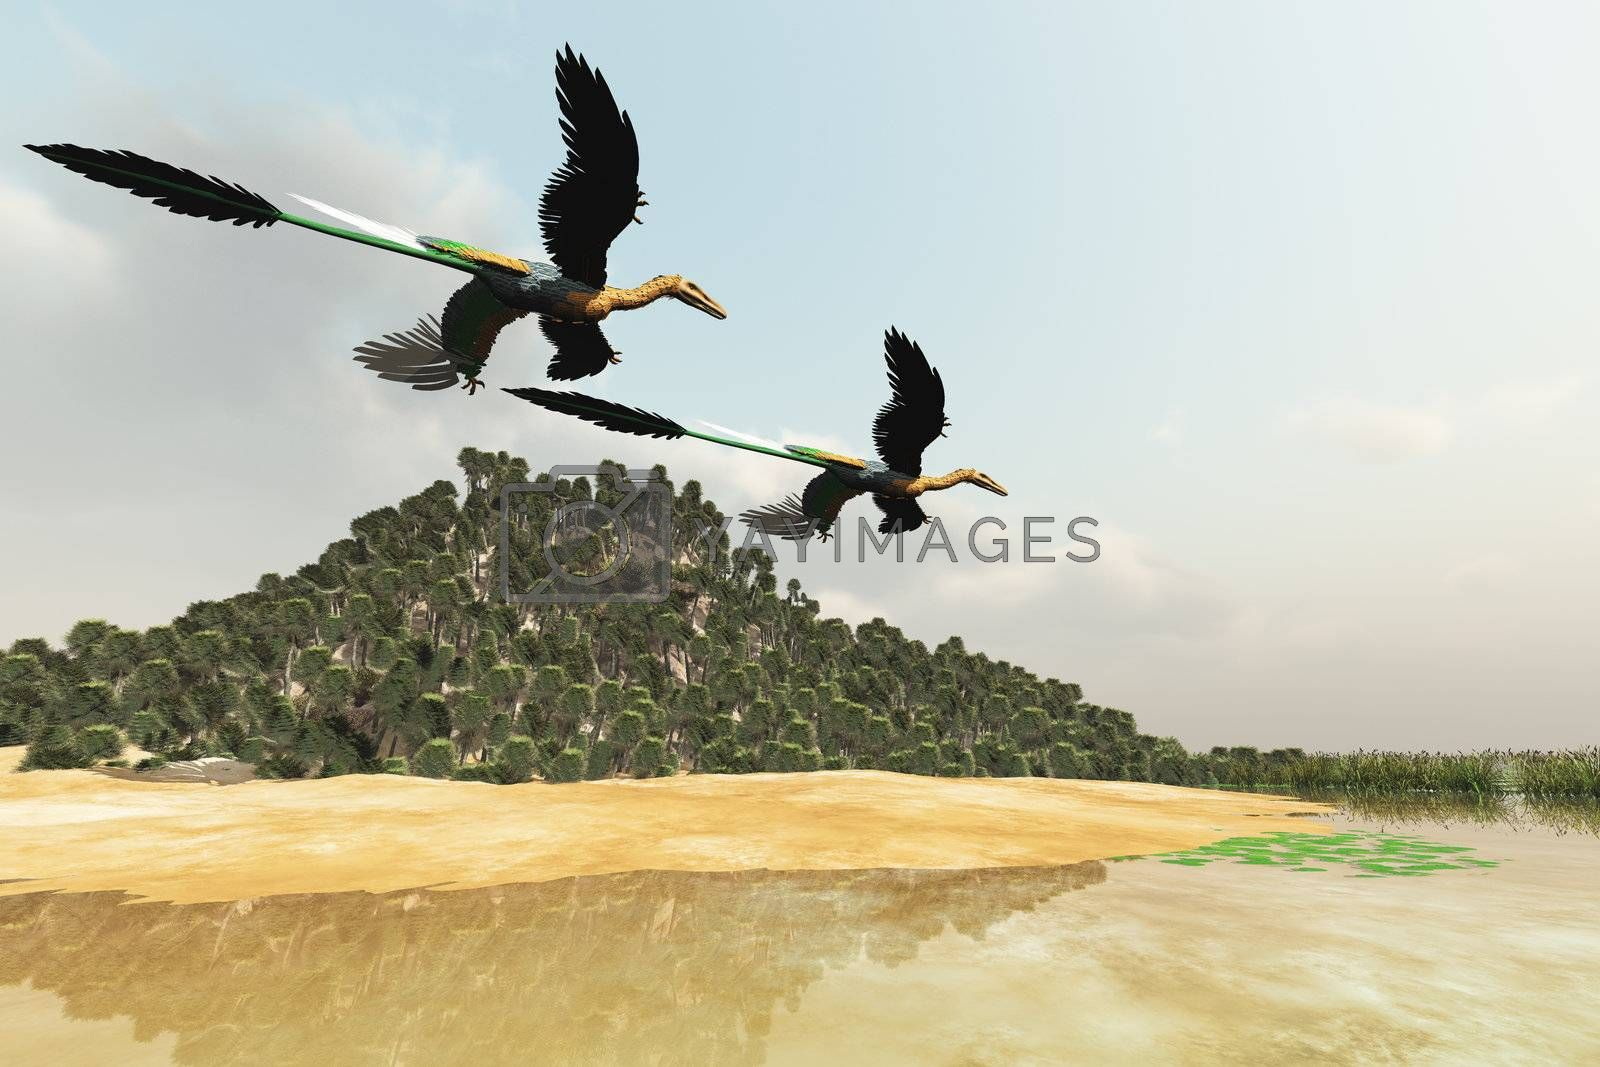 Two Microraptor dinosaurs fly over a wetland marsh in prehistoric times.